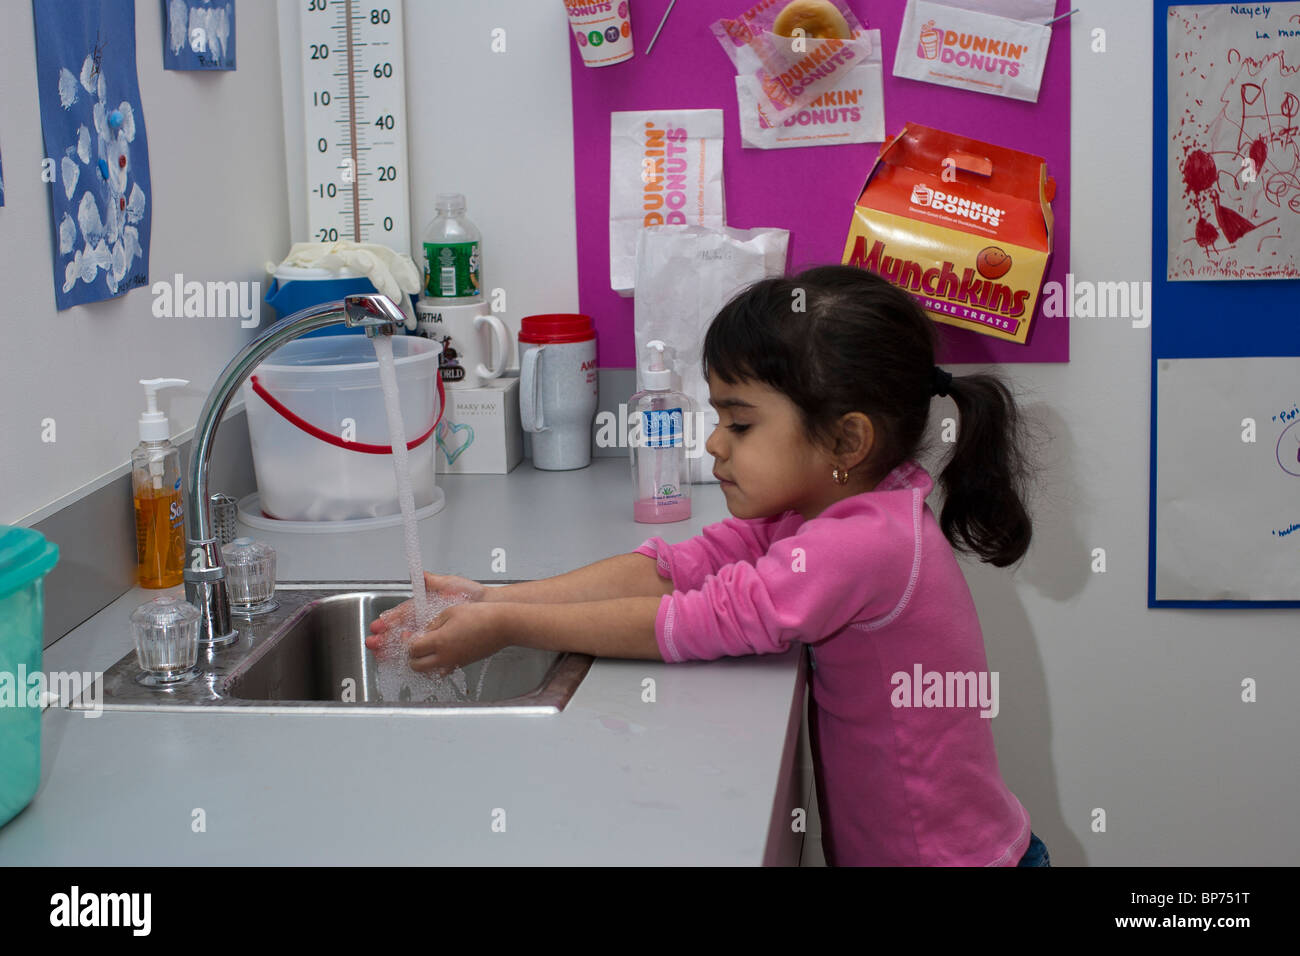 4 Year Old Preschool Girl Washing Her Hands At The Sink In School Stock Photo